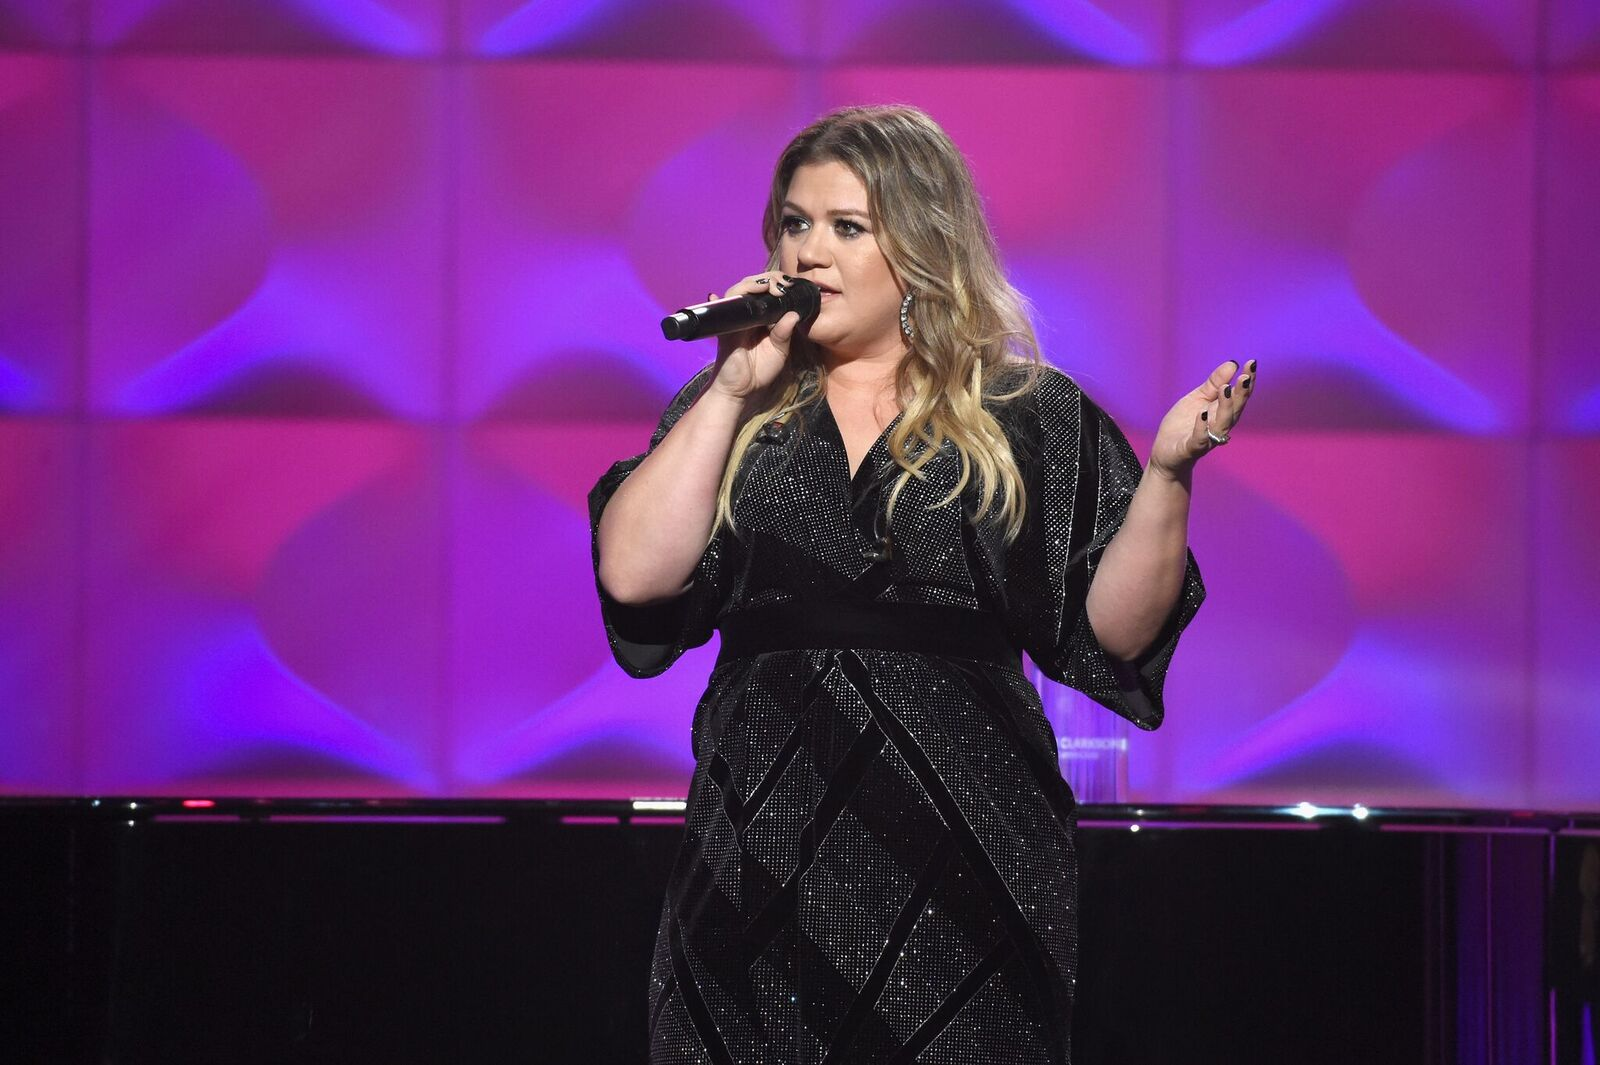 Honoree Kelly Clarkson performs onstage Billboard Women In Music 2017 at The Ray Dolby Ballroom at Hollywood & Highland Center on November 30, 2017 | Photo: Getty Images